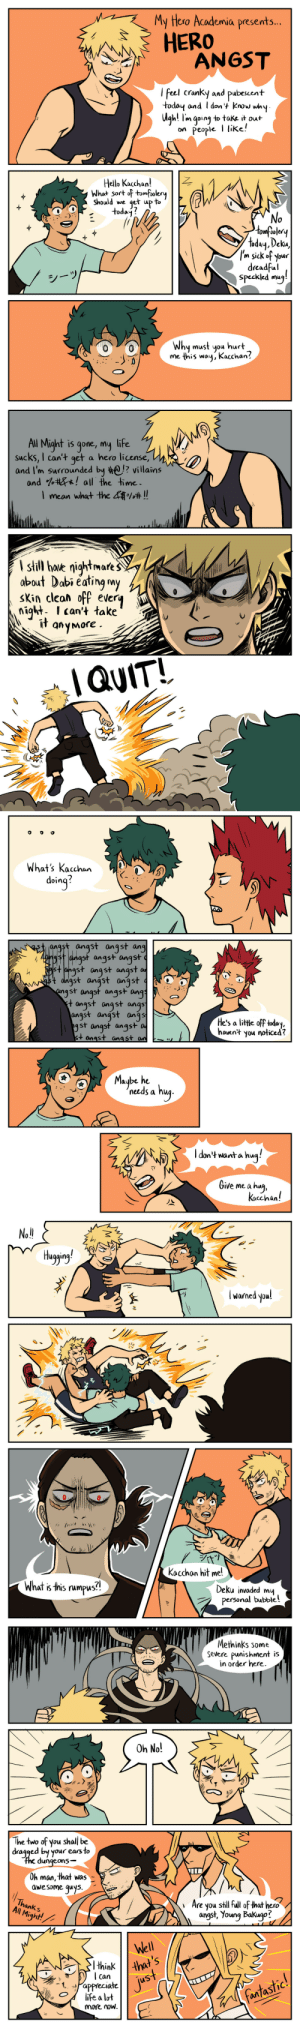 squidwithelbows:  Can you believe Neil Cicierega predicted Deku vs Kacchan 2 over a decade ago? Wild.: yHero Academia presents...  HERO  feel cranky and pabescent  todoq and I don + KnoJ why  Ugh! ln going to take it out  on People I like!  Hello Kacchan!  What sort otomfolery  should we 4et up to  oday  No  omfoojer  today, Deka,  'n sick of your  dreadful  speckled muj!  Why must you hurt  me this way, Kacchan?   All Might is gone, my life  sucks, I can't get a hero license,  and I'm surrounded by ? villains  and % all the time.  mean what the 4  ,# !!  I still haie nightmare  obout Dabi éating my  sKin clean off every  night I can't take  it gnyMore  QUIT!   what's Kachen  doinq?  angst angst ang  gst angst angst  ahgst angst angst  t anast anast anast  gst angst angst angs  t angst angst angs  angst angst angs  gst angst angst  +onast anast  He's a litte off today,  havent you noticed?  Maybe he  needs a hu  I don't wana hua!  Give me a hug  Kacchan!   No!  Huggng  l warned youl  :///  钐1)'  Kocchan hit me!  What is this rumpus?1  Deku invaded mu  personal bubble!   Methinks some  Severe punishment is  in order here.  Oh No!  The two of you shal be  dragged by your eas to  du  ngeons-  Oh man, that was  aweSome quys.  Thanks  Al Might!  Are you sthil Full of that hero  angst, Young Bakugo?  Well  thw  uS  Can  tappreciate  life a lot  fantastic.  More noW. squidwithelbows:  Can you believe Neil Cicierega predicted Deku vs Kacchan 2 over a decade ago? Wild.